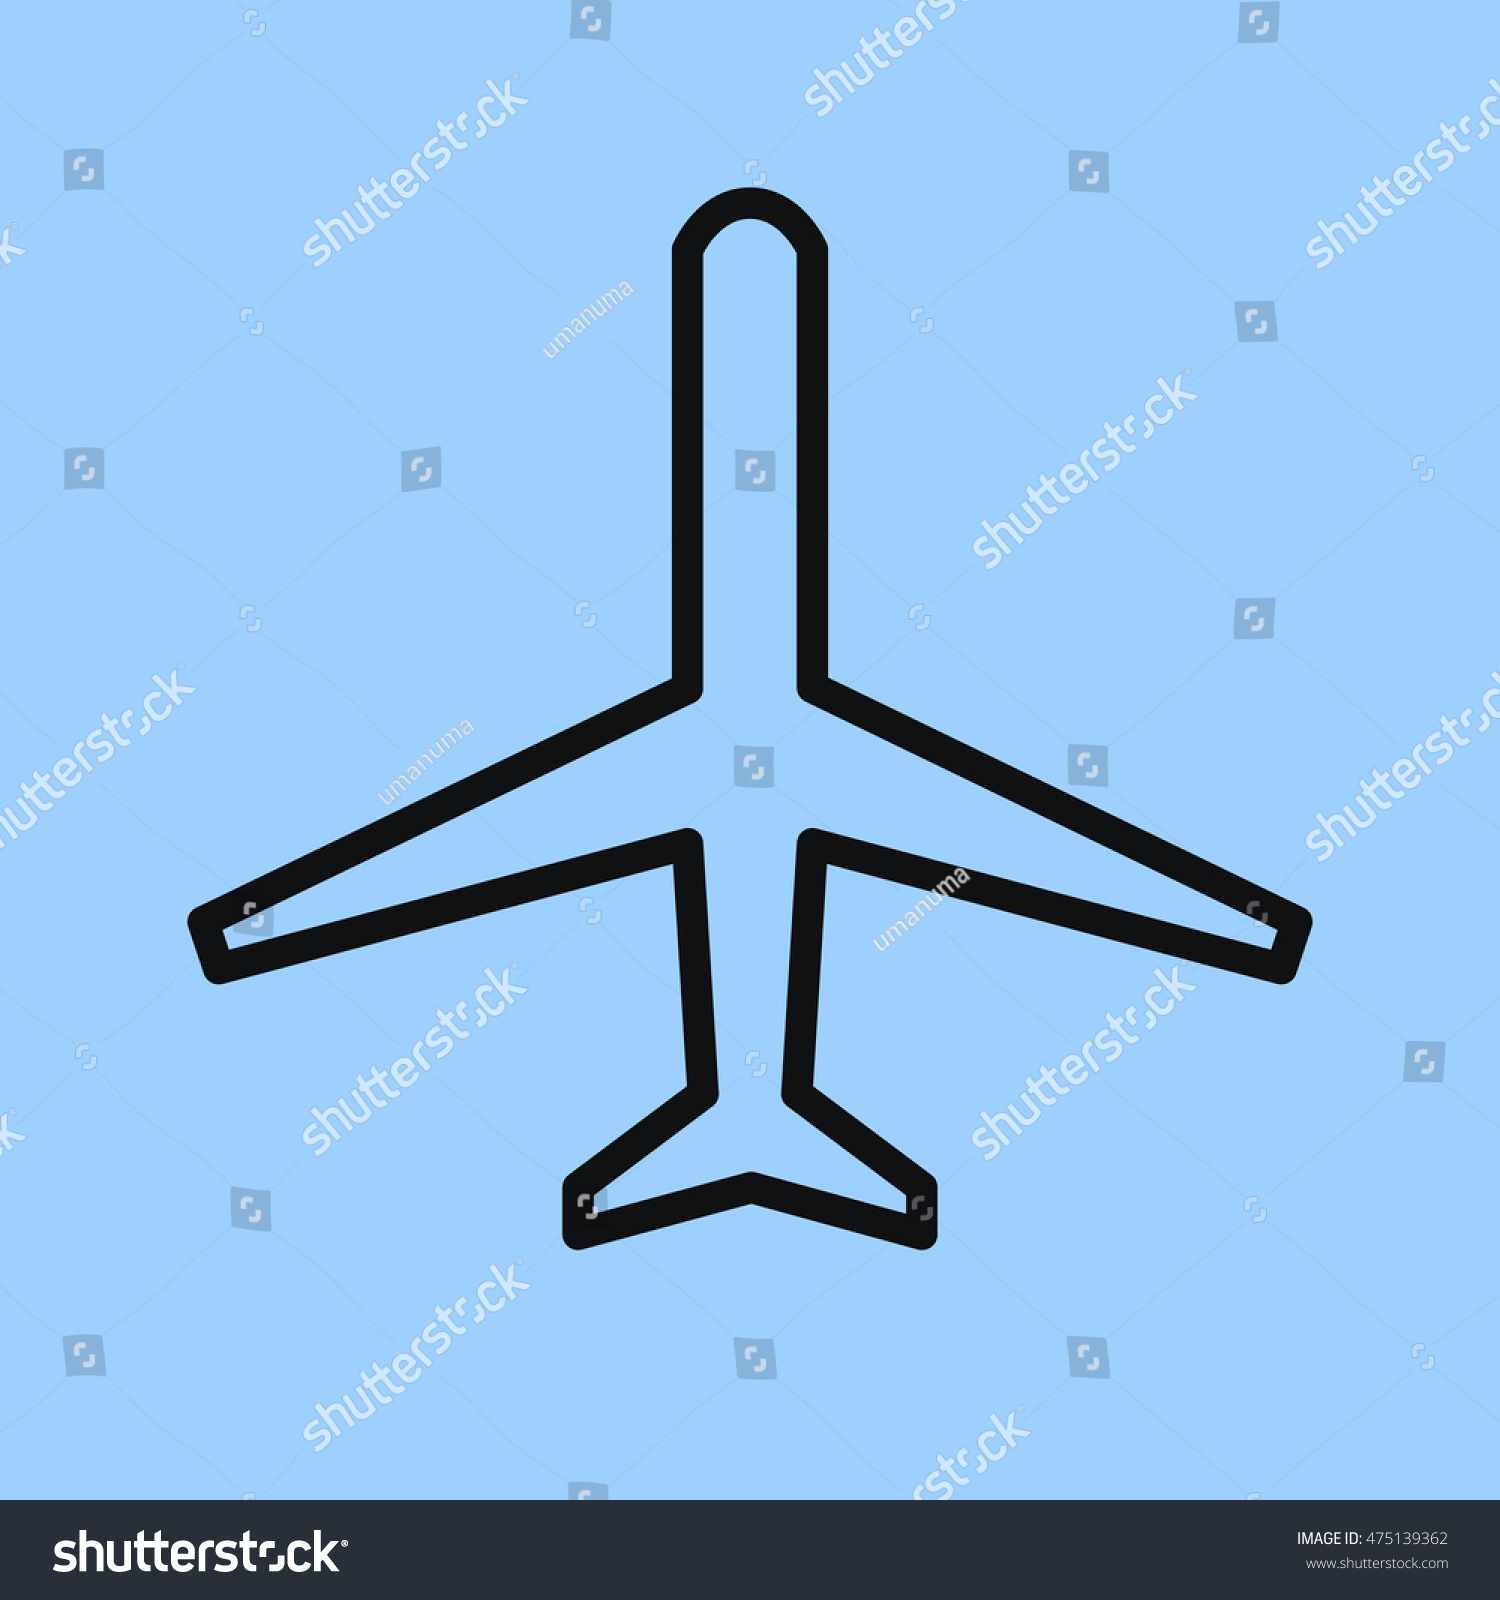 airplane icon simple passenger or transport aircraft top view flat thin line drawing